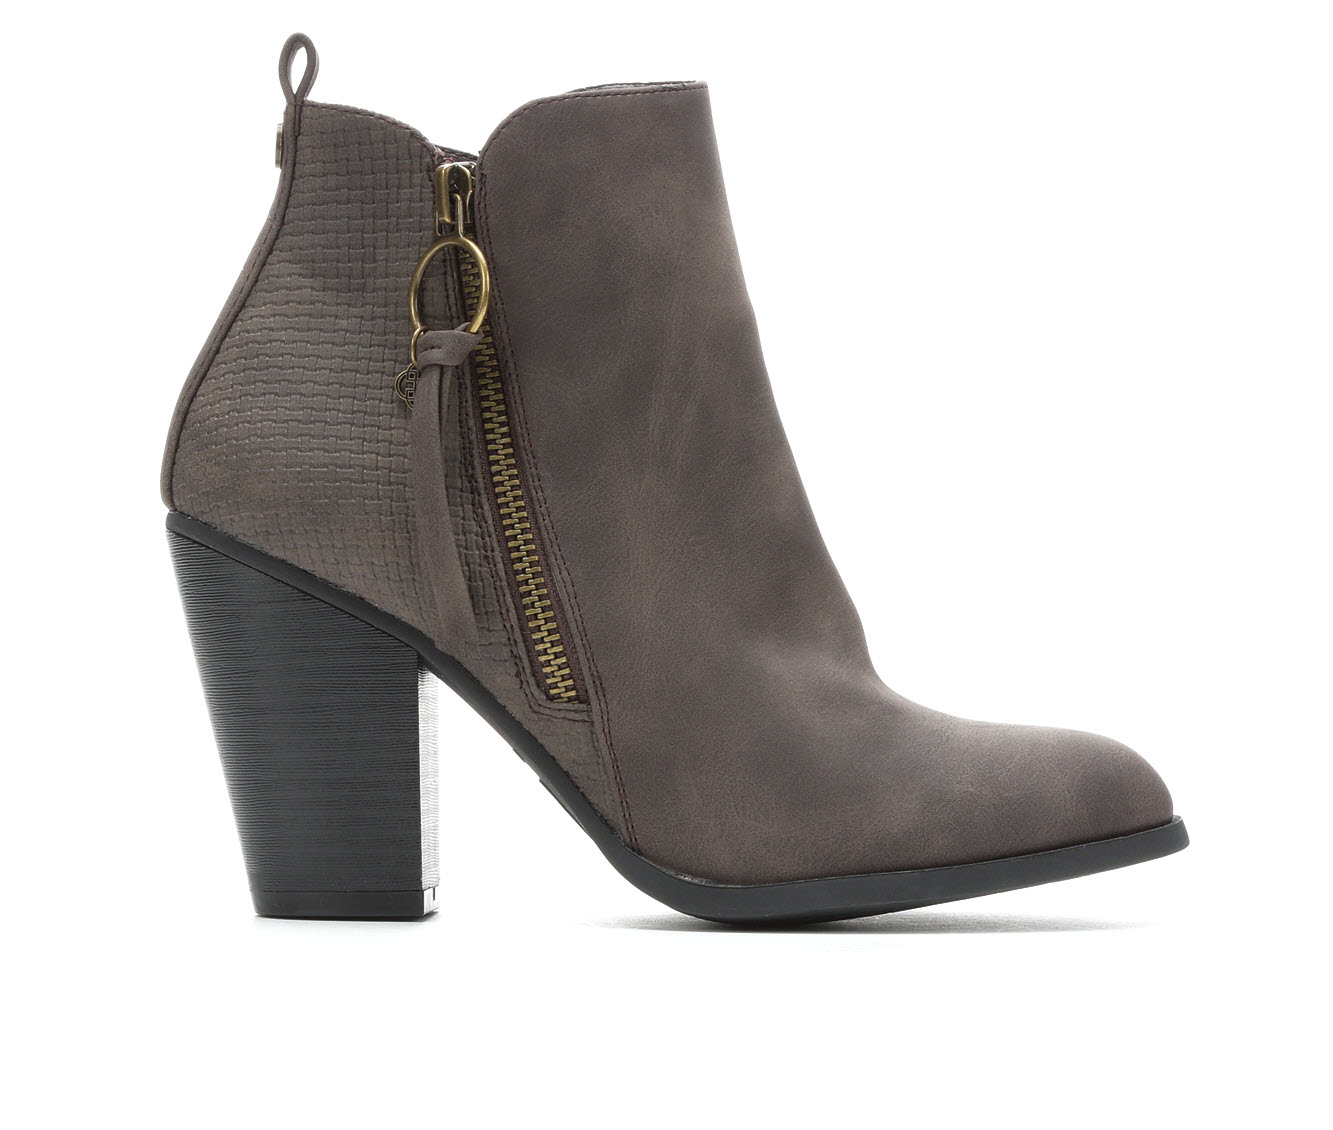 Daisy Fuentes Clay Women's Boots (Brown - Faux Leather)